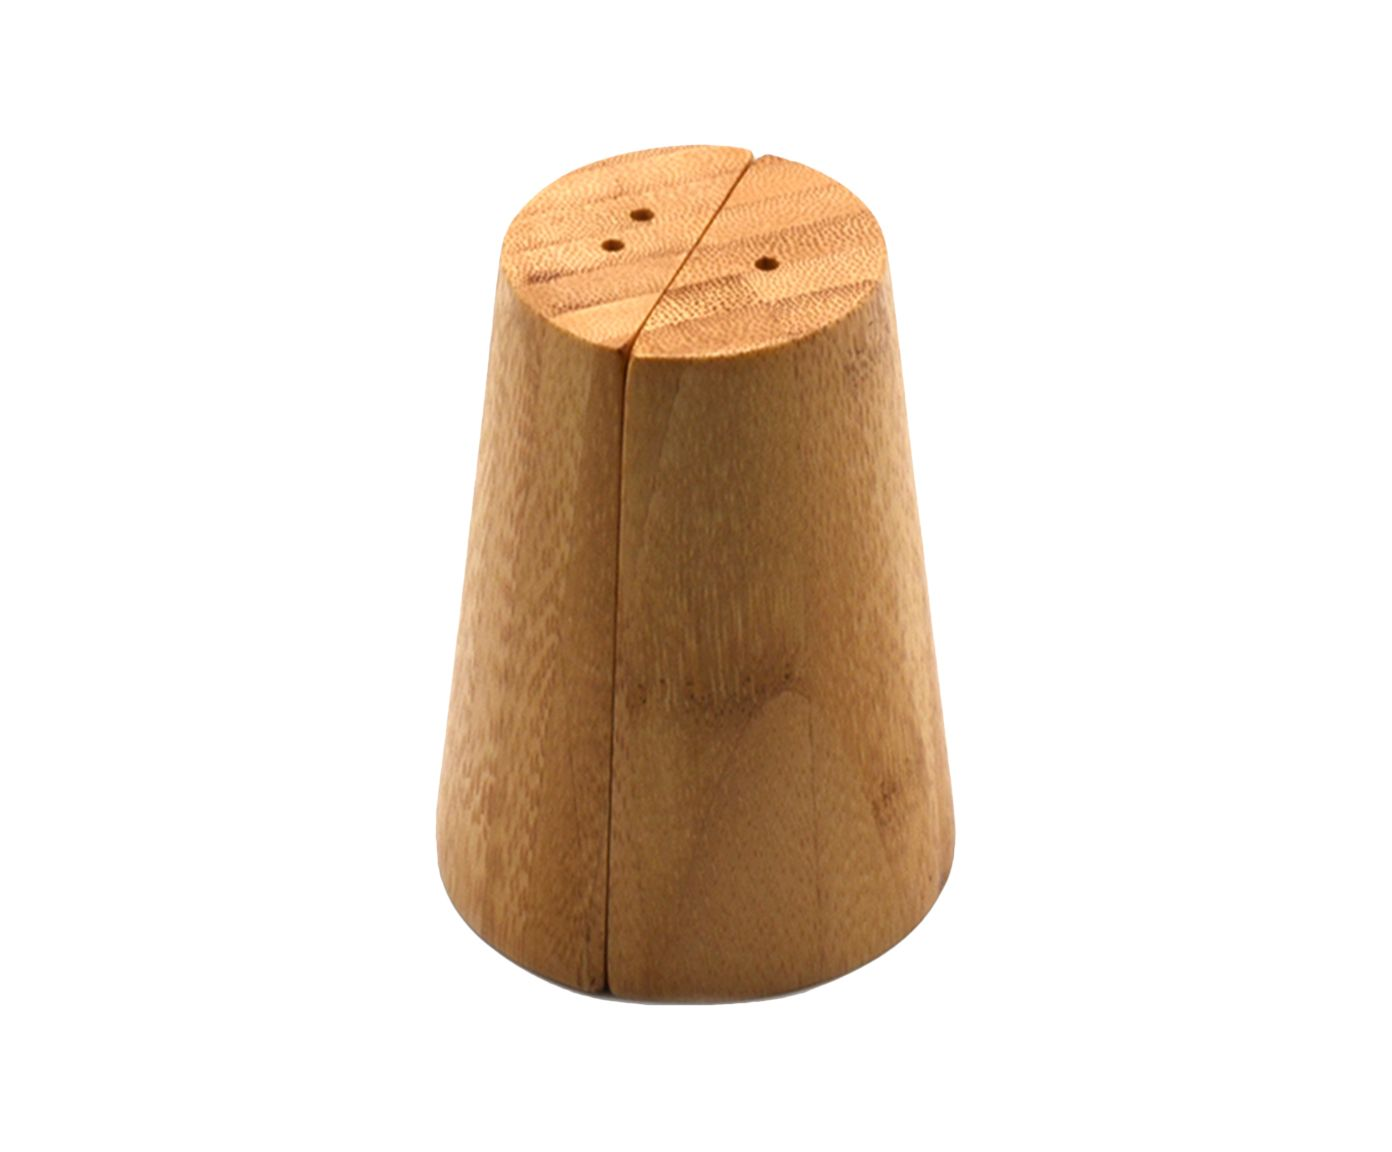 Saleiro Bamboo Conic - 3cm | Westwing.com.br